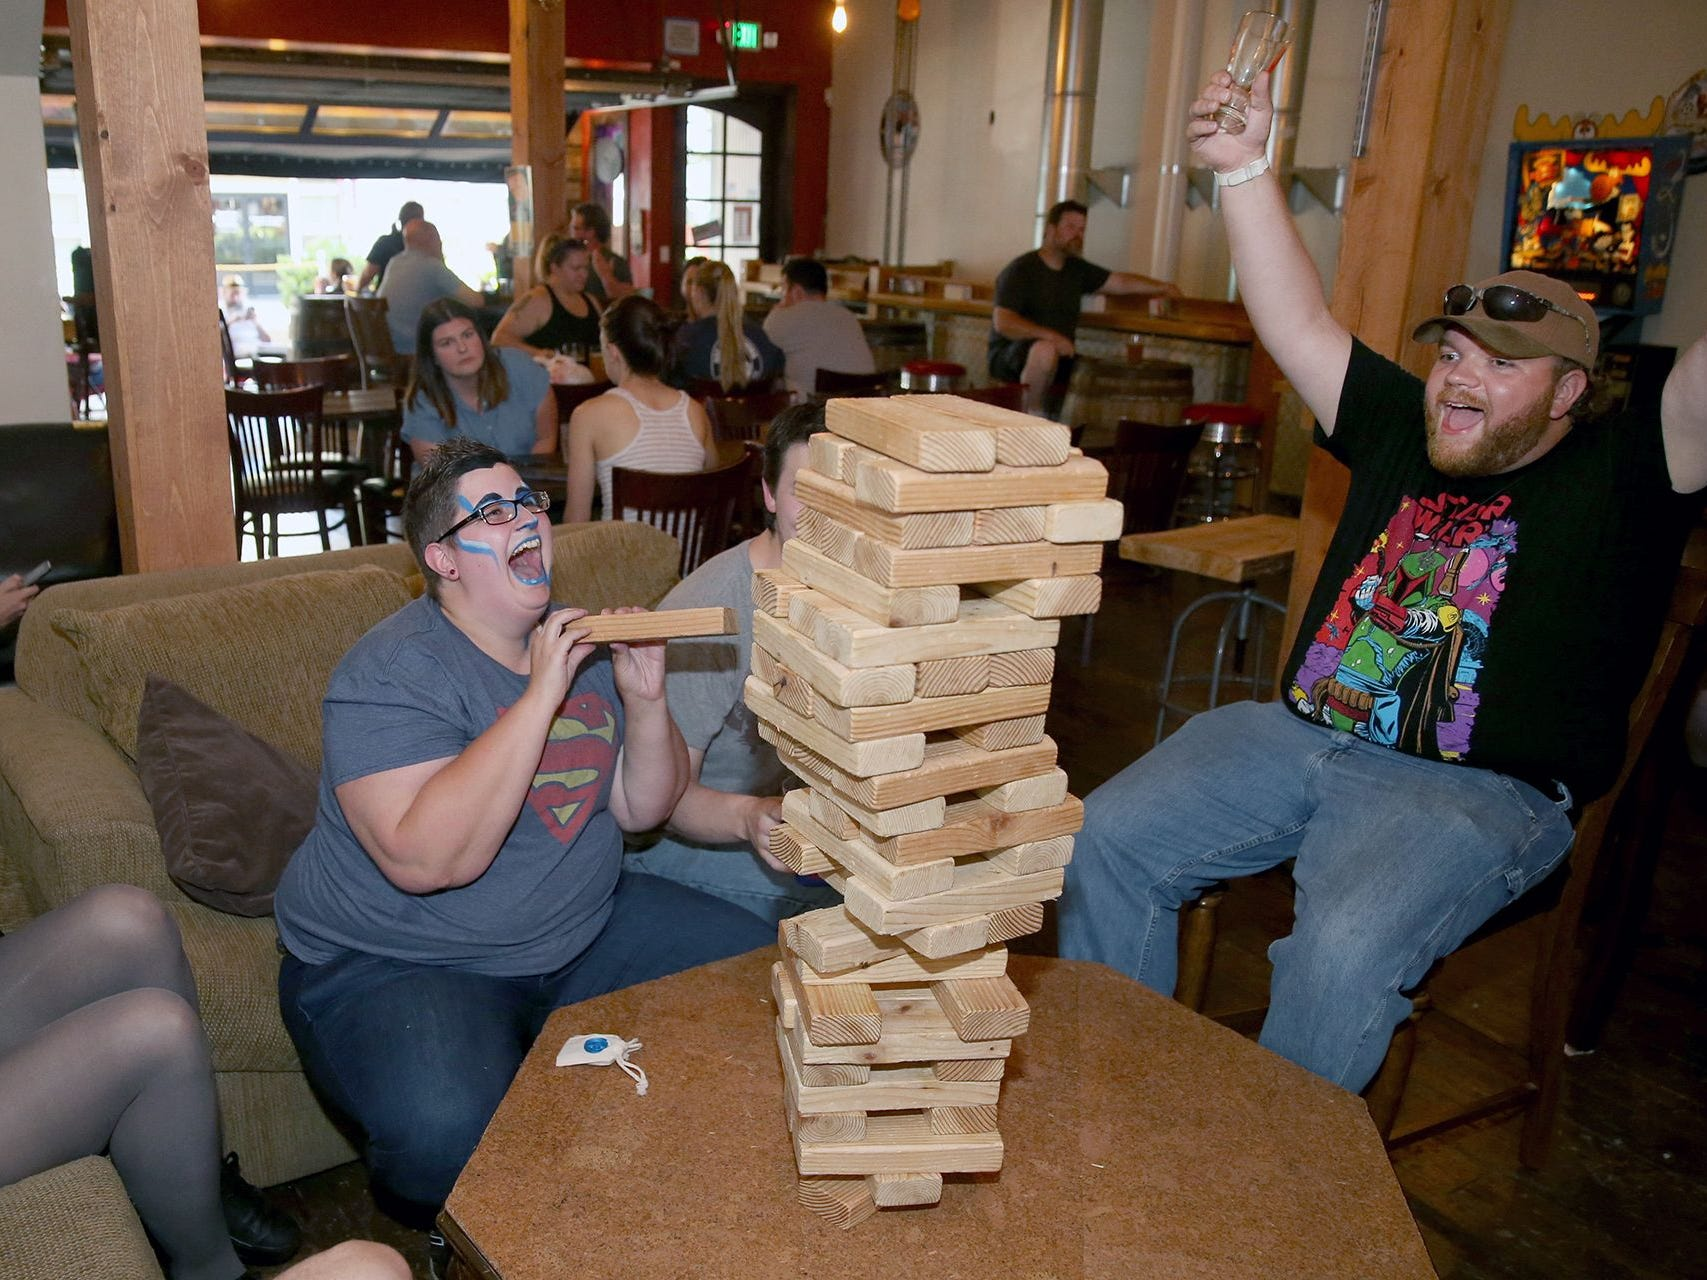 Jenga players (left to right) Katelyn Ziegenhagen, Nic Shakley, and Zach Siltanen celebrate Shakley's move at Dog Days Brewing during the 2018 Nerd Crawl in downtown Bremerton on July 26, 2018.